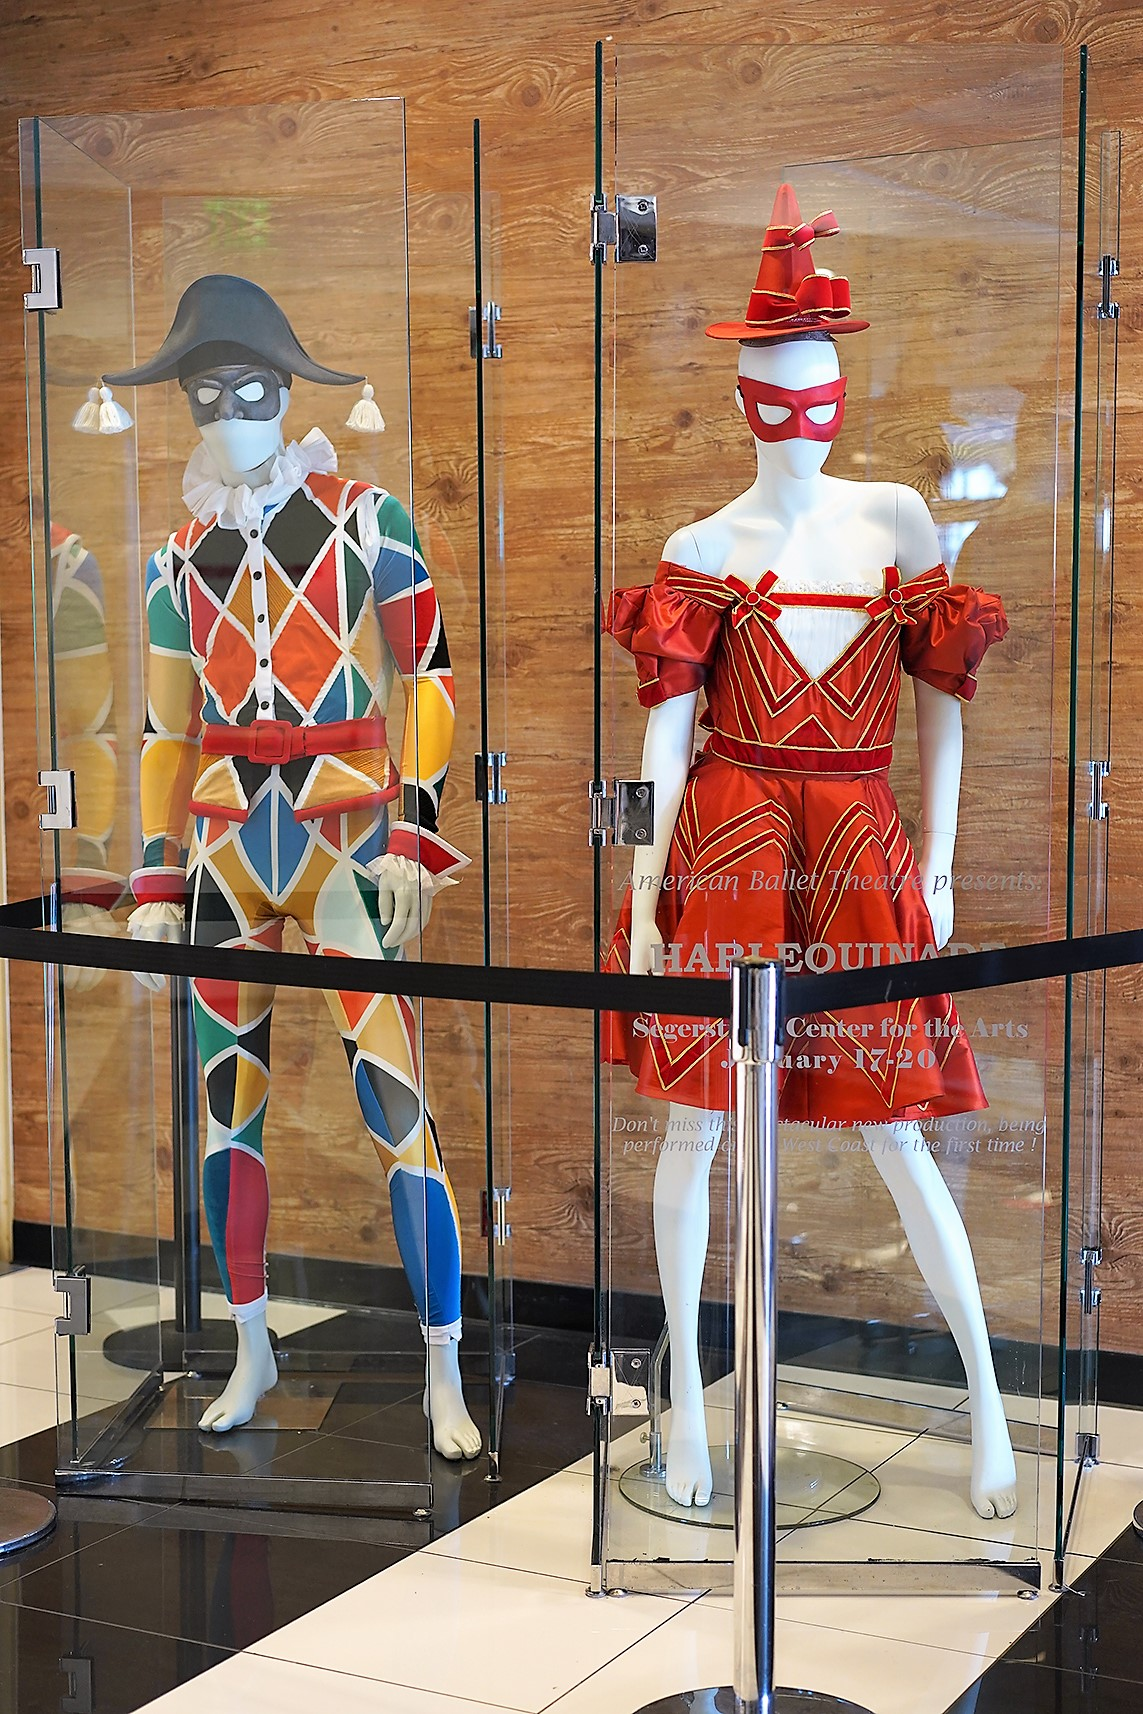 American Ballet Theatre's Harlequinade Ballet Costumes Displayed outside Bloomingdale's South Coast Plaza entrance